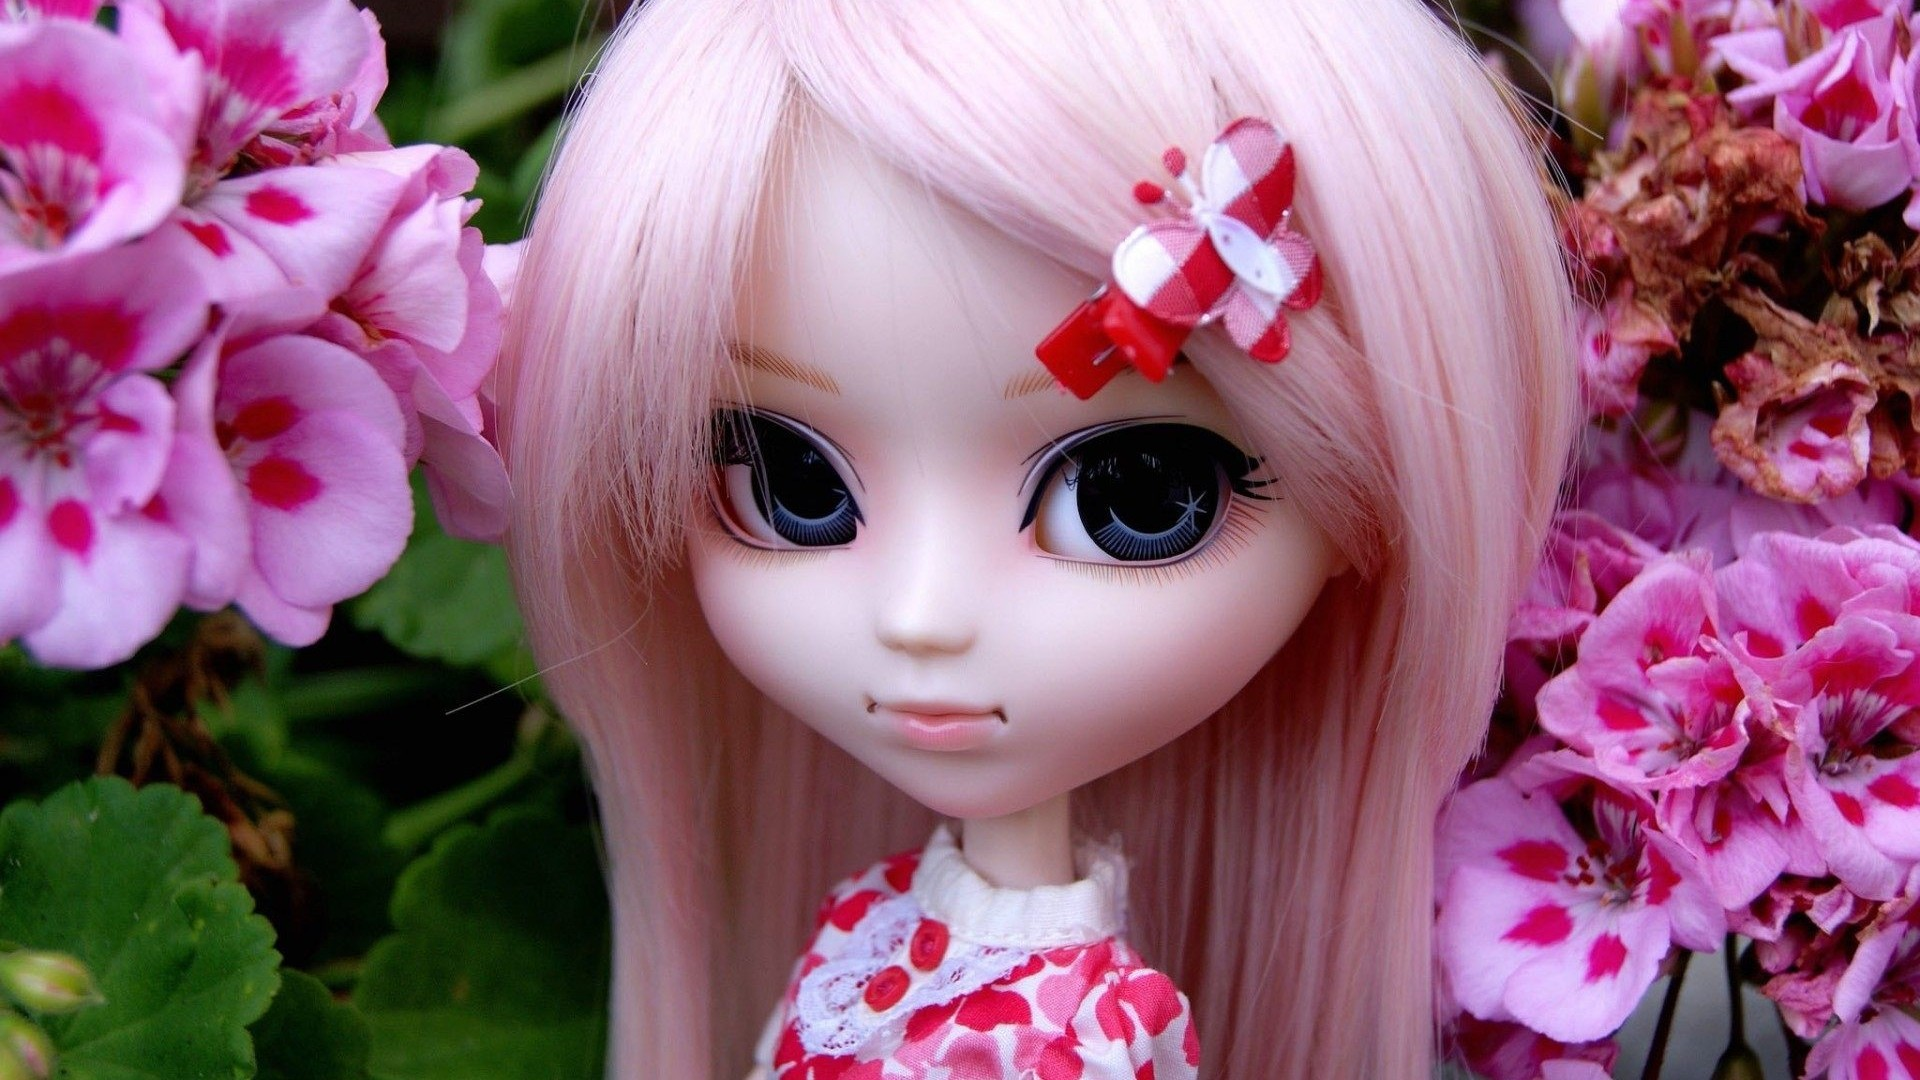 Cute Barbie Doll Wallpaper HD Pictures One HD Wallpaper Pictures | HD  Wallpapers | Pinterest | Barbie doll, Barbie and Hd wallpaper